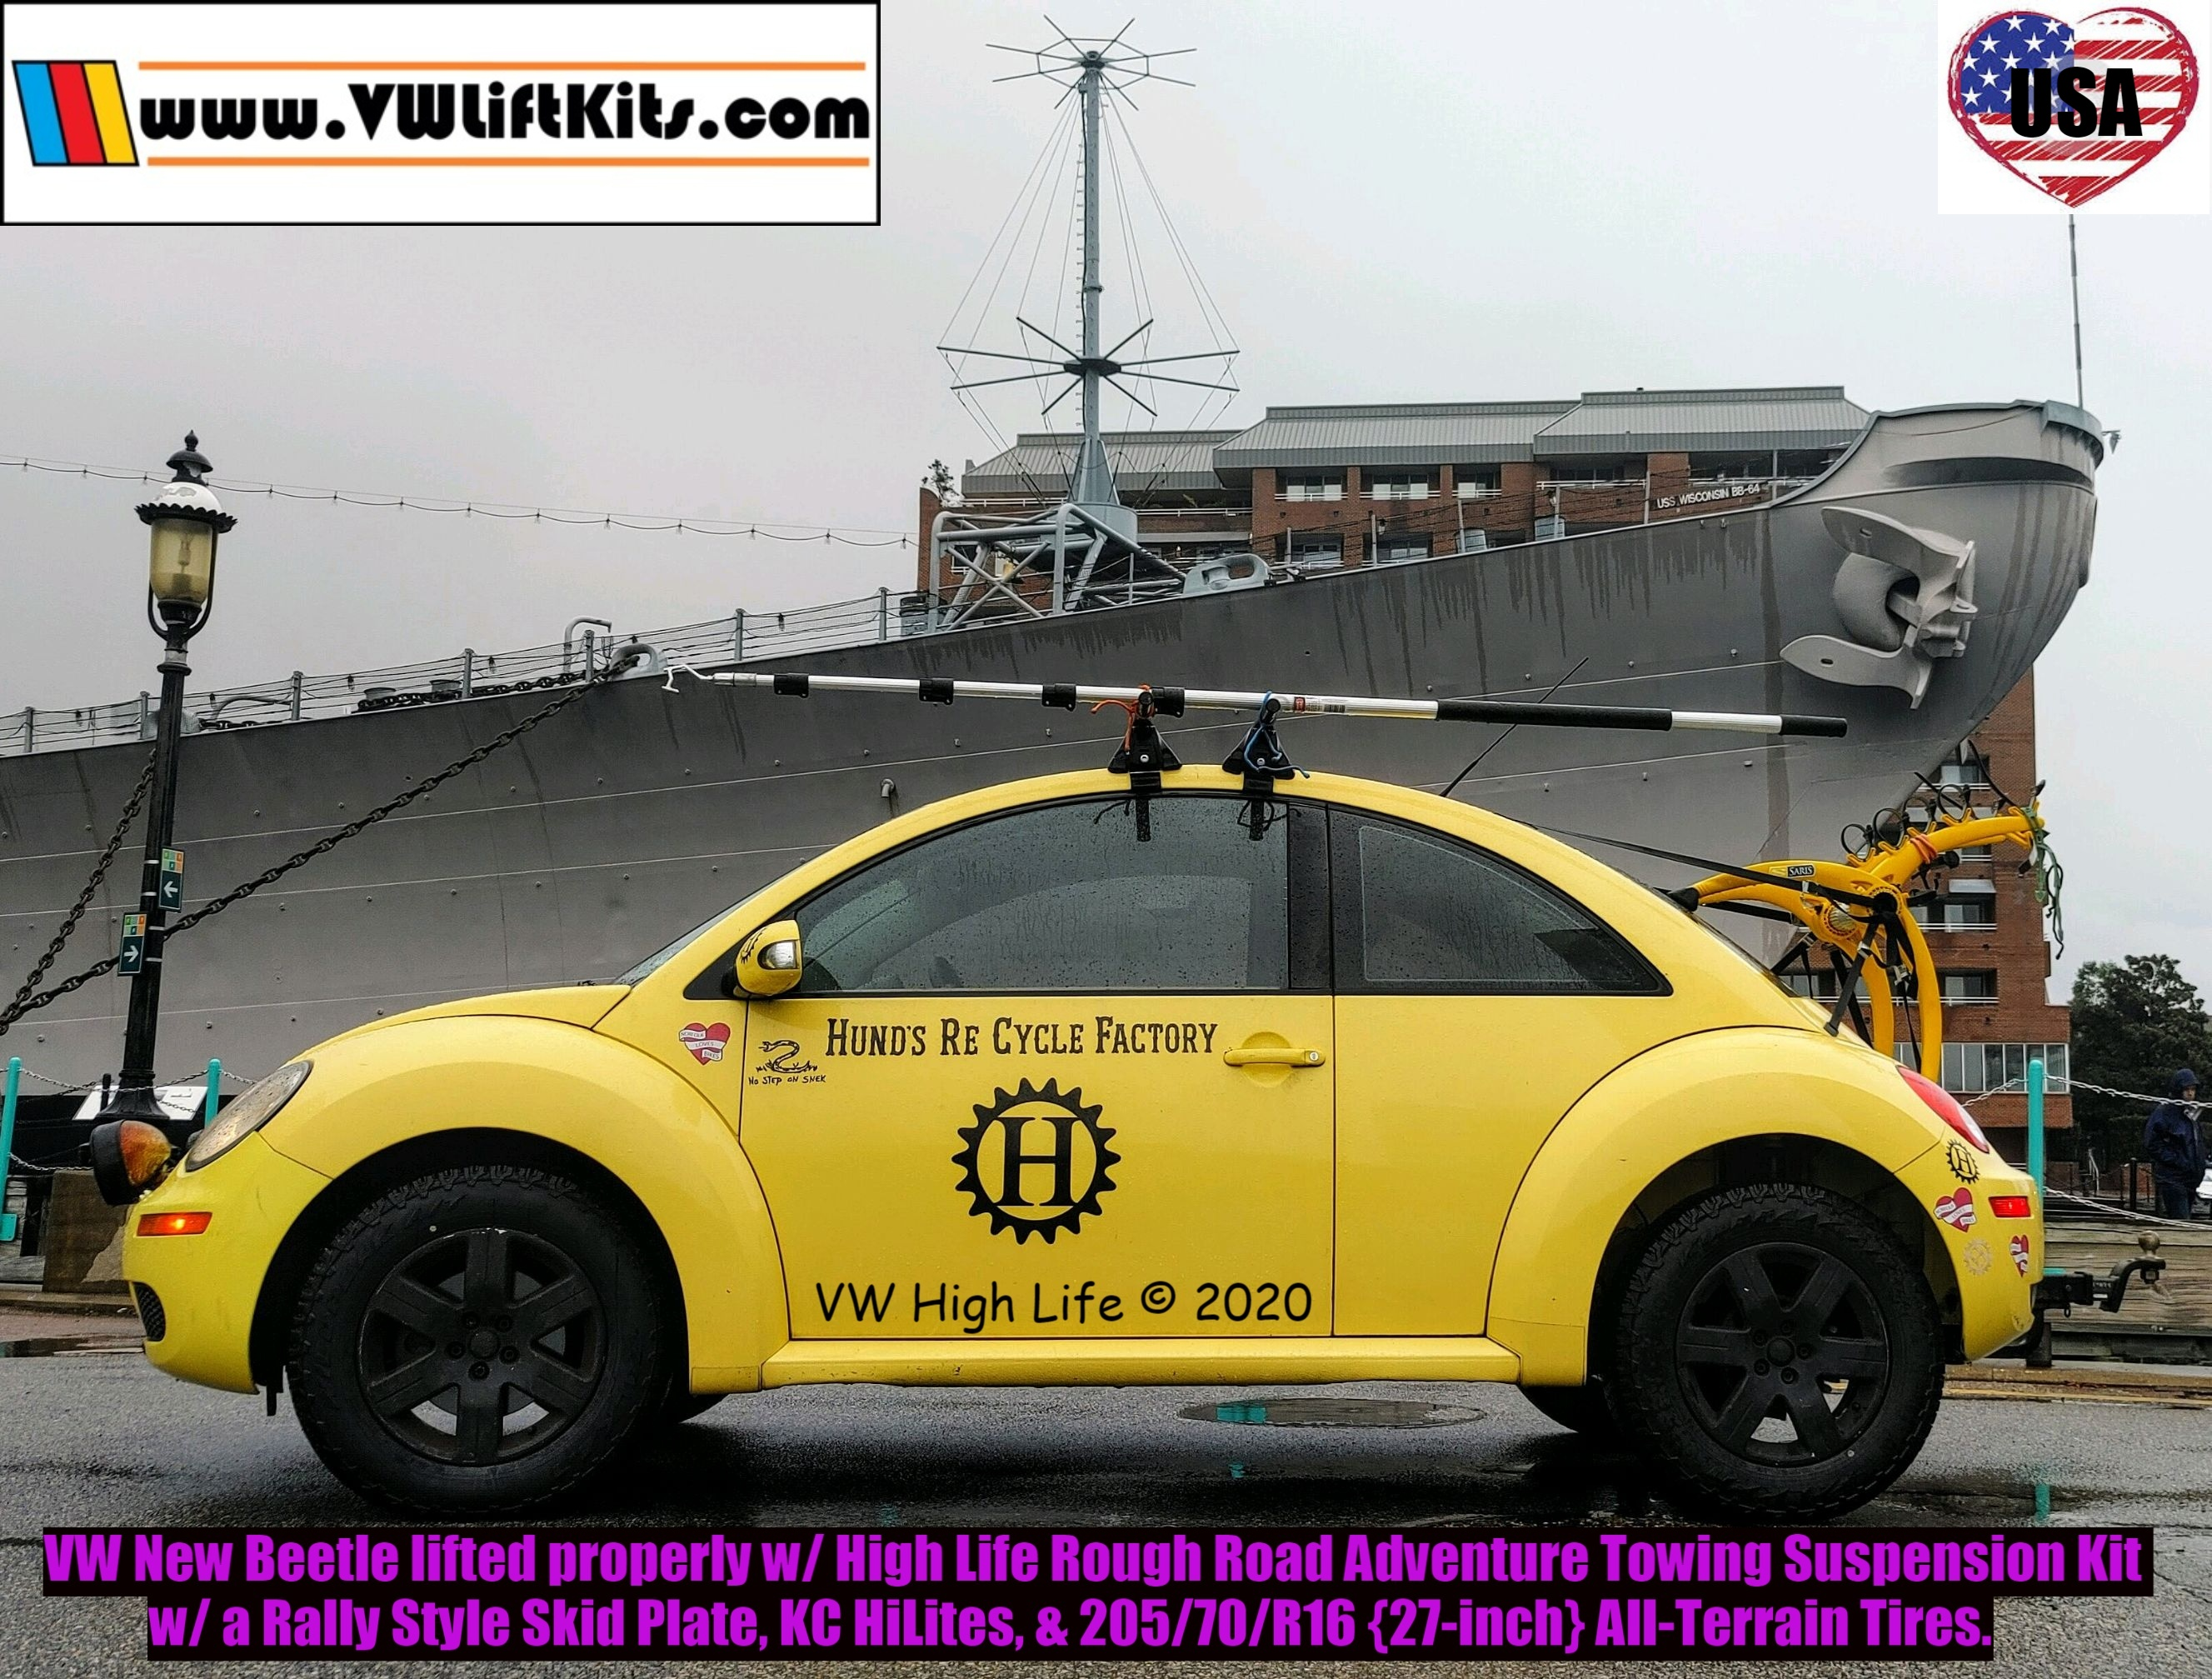 VW New Beetle Adventure Bug raised properly w/ the VW High Life Rough Road Towing Package featuring Bilsteins.